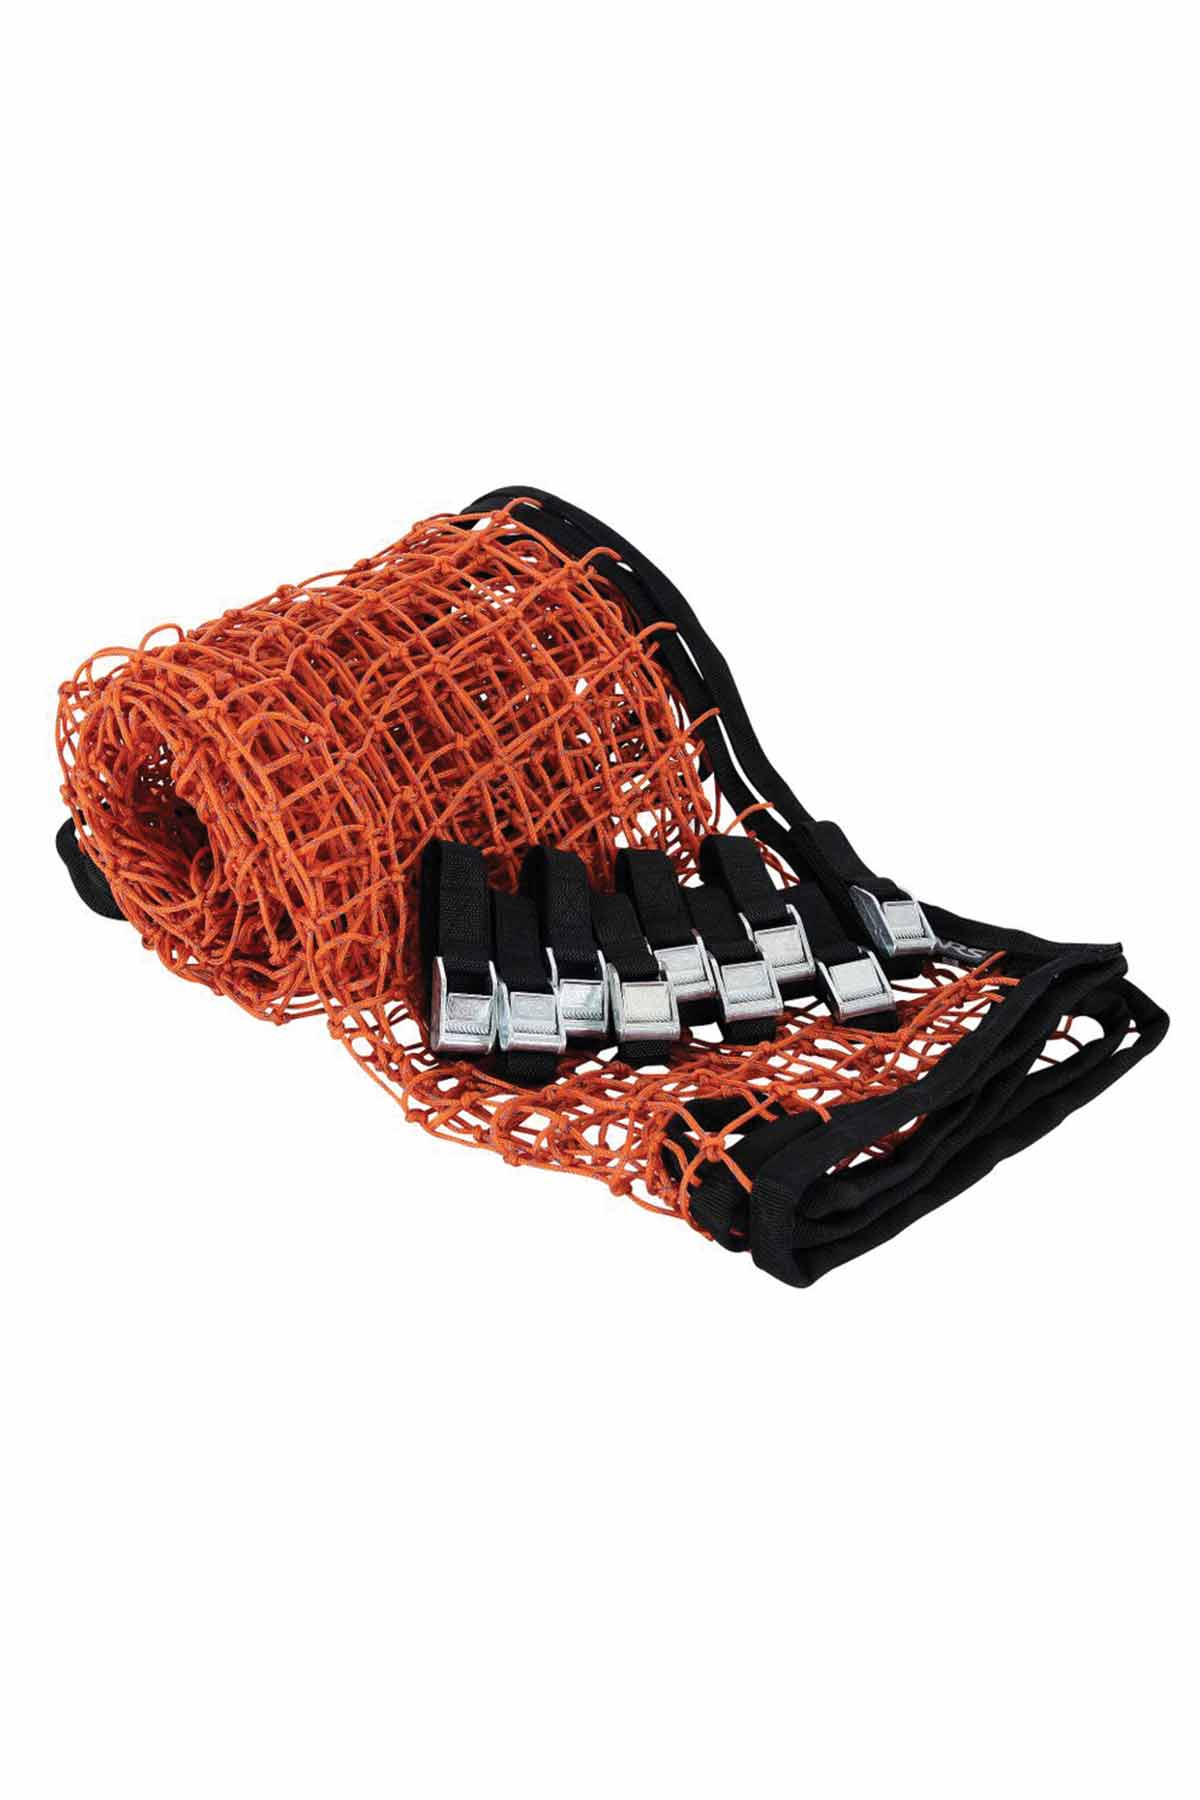 NRS Raft Cargo Net Large with straps